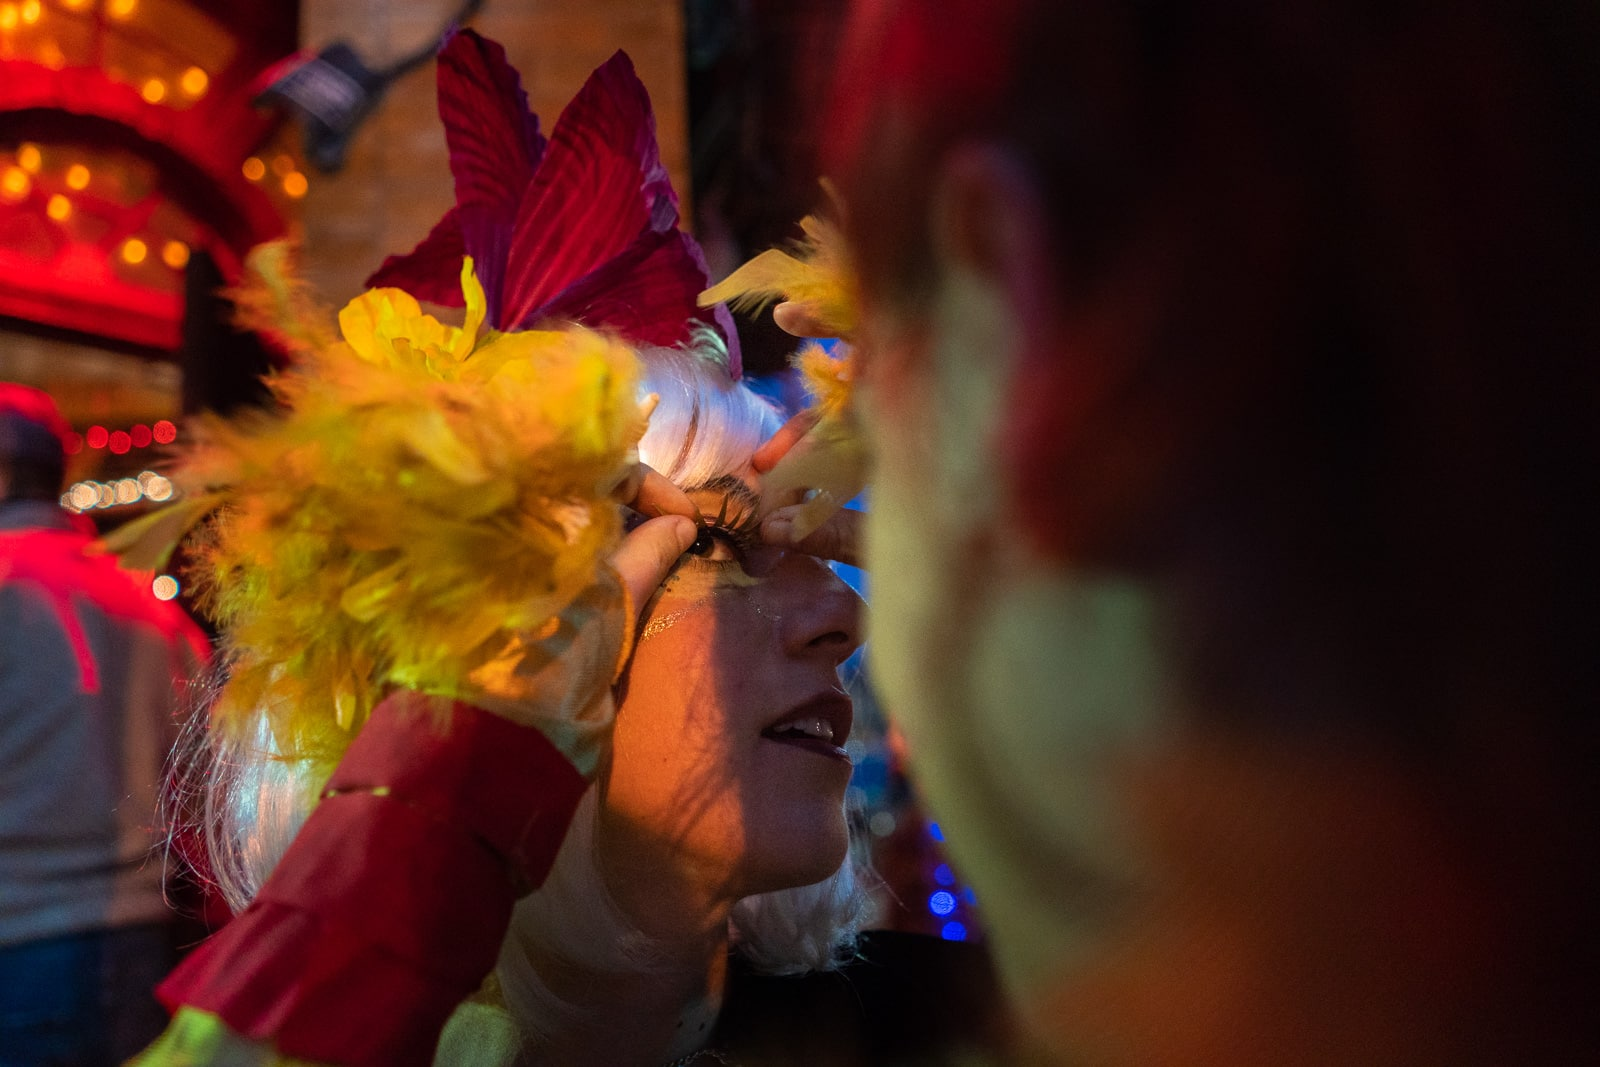 Gluing fake eyelashes onto a girl for a Mardi Gras parade in New Orleans